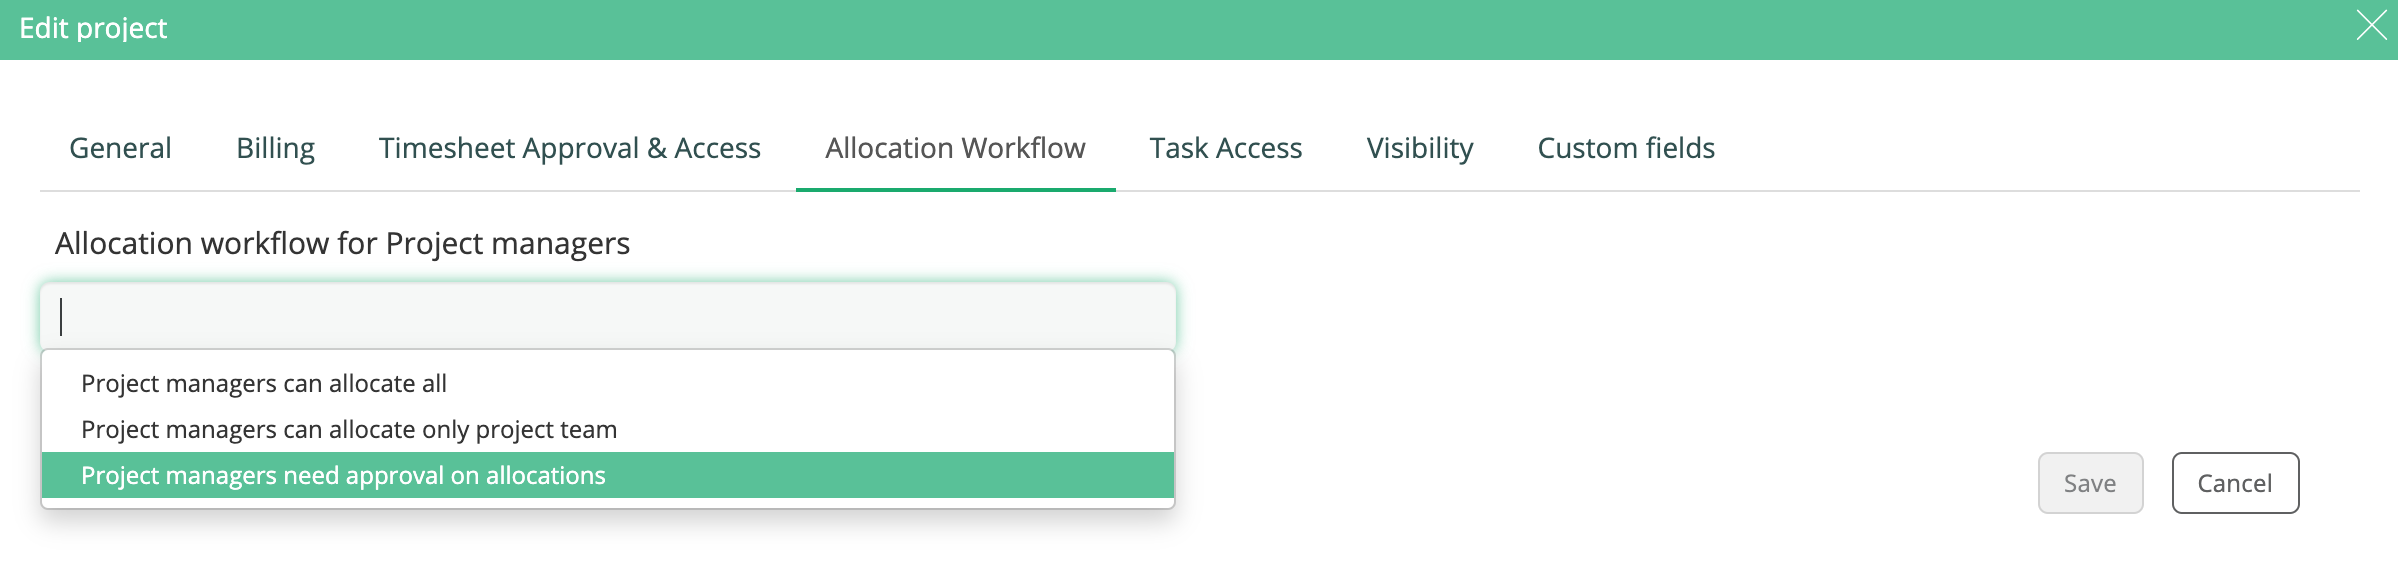 Allocation workflow for PM